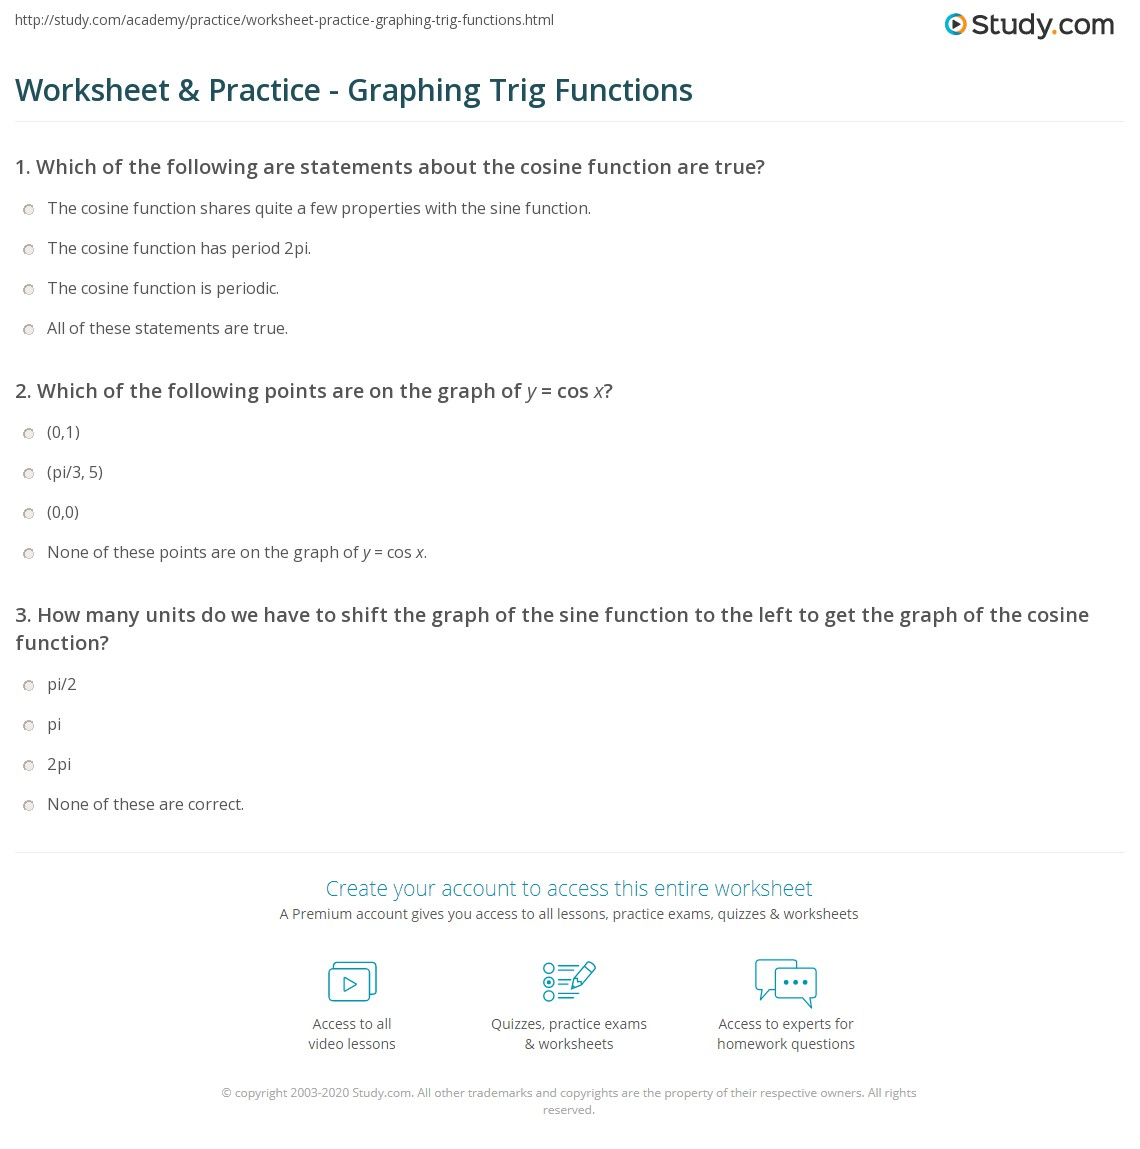 worksheet Graphing Trig Functions Worksheet With Answers worksheet practice graphing trig functions study com print how to graph cosx worksheet